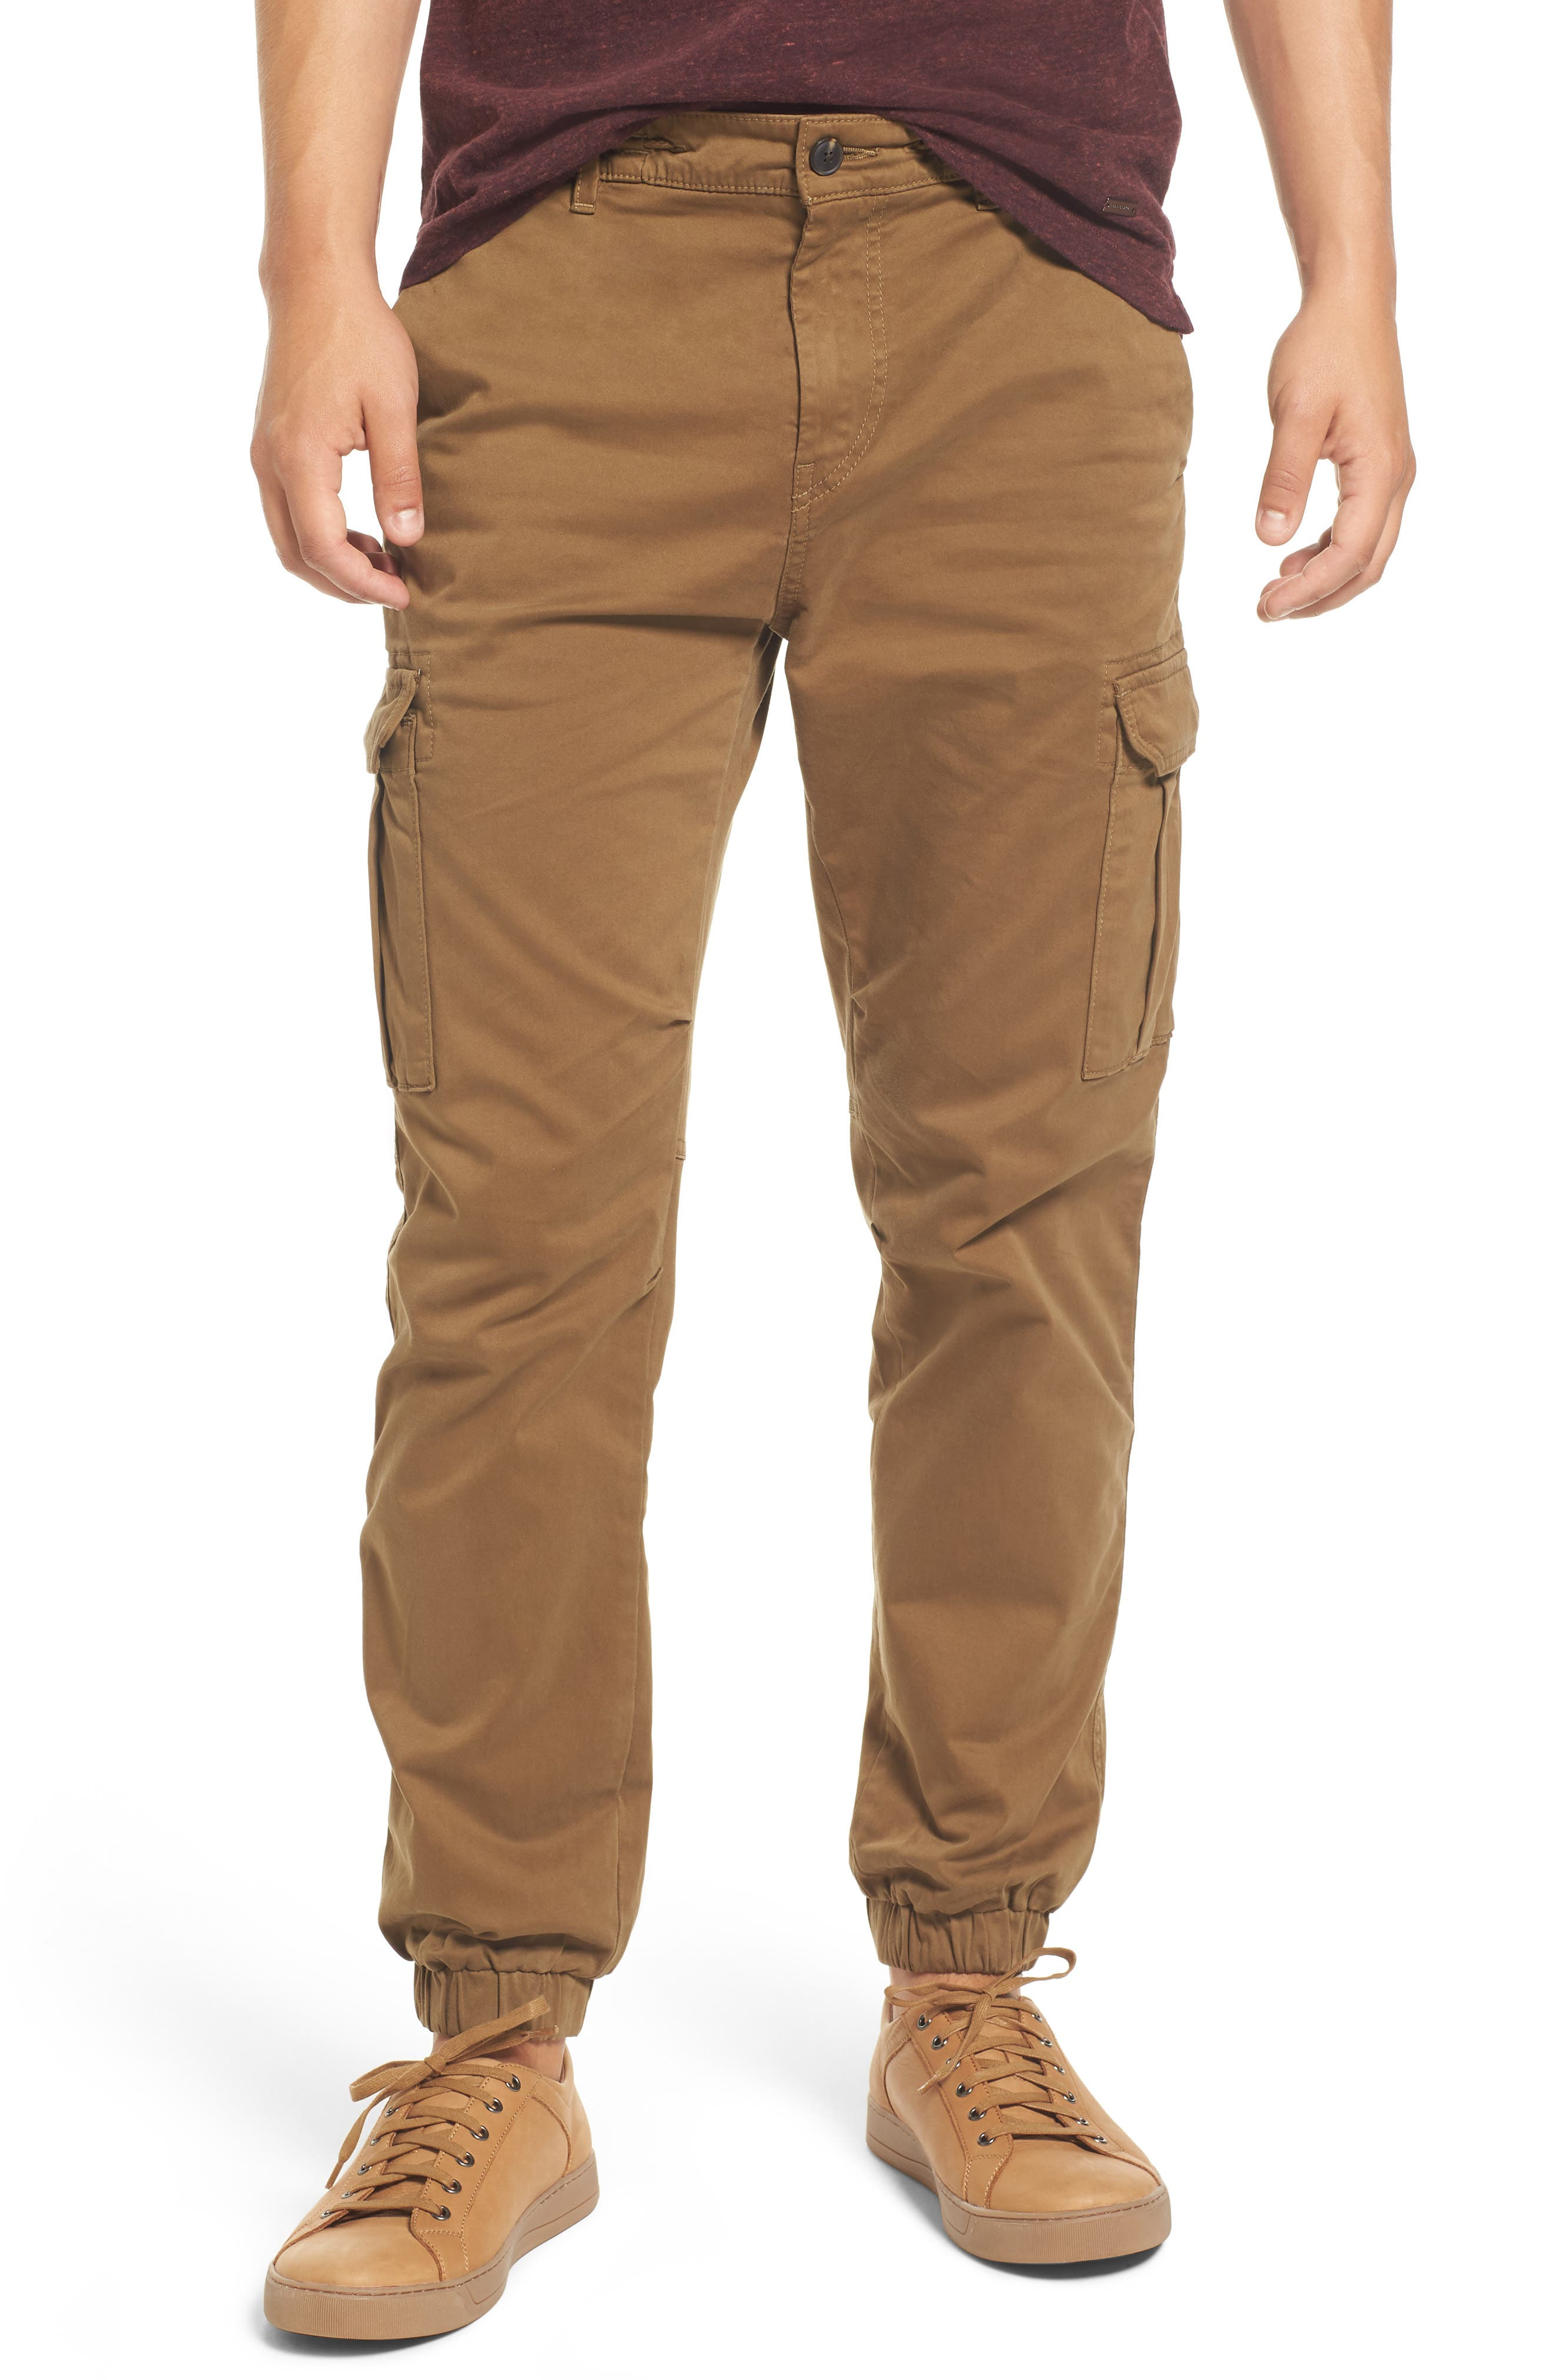 Shay 2 Cargo Pants,                         Main,                         color, 280